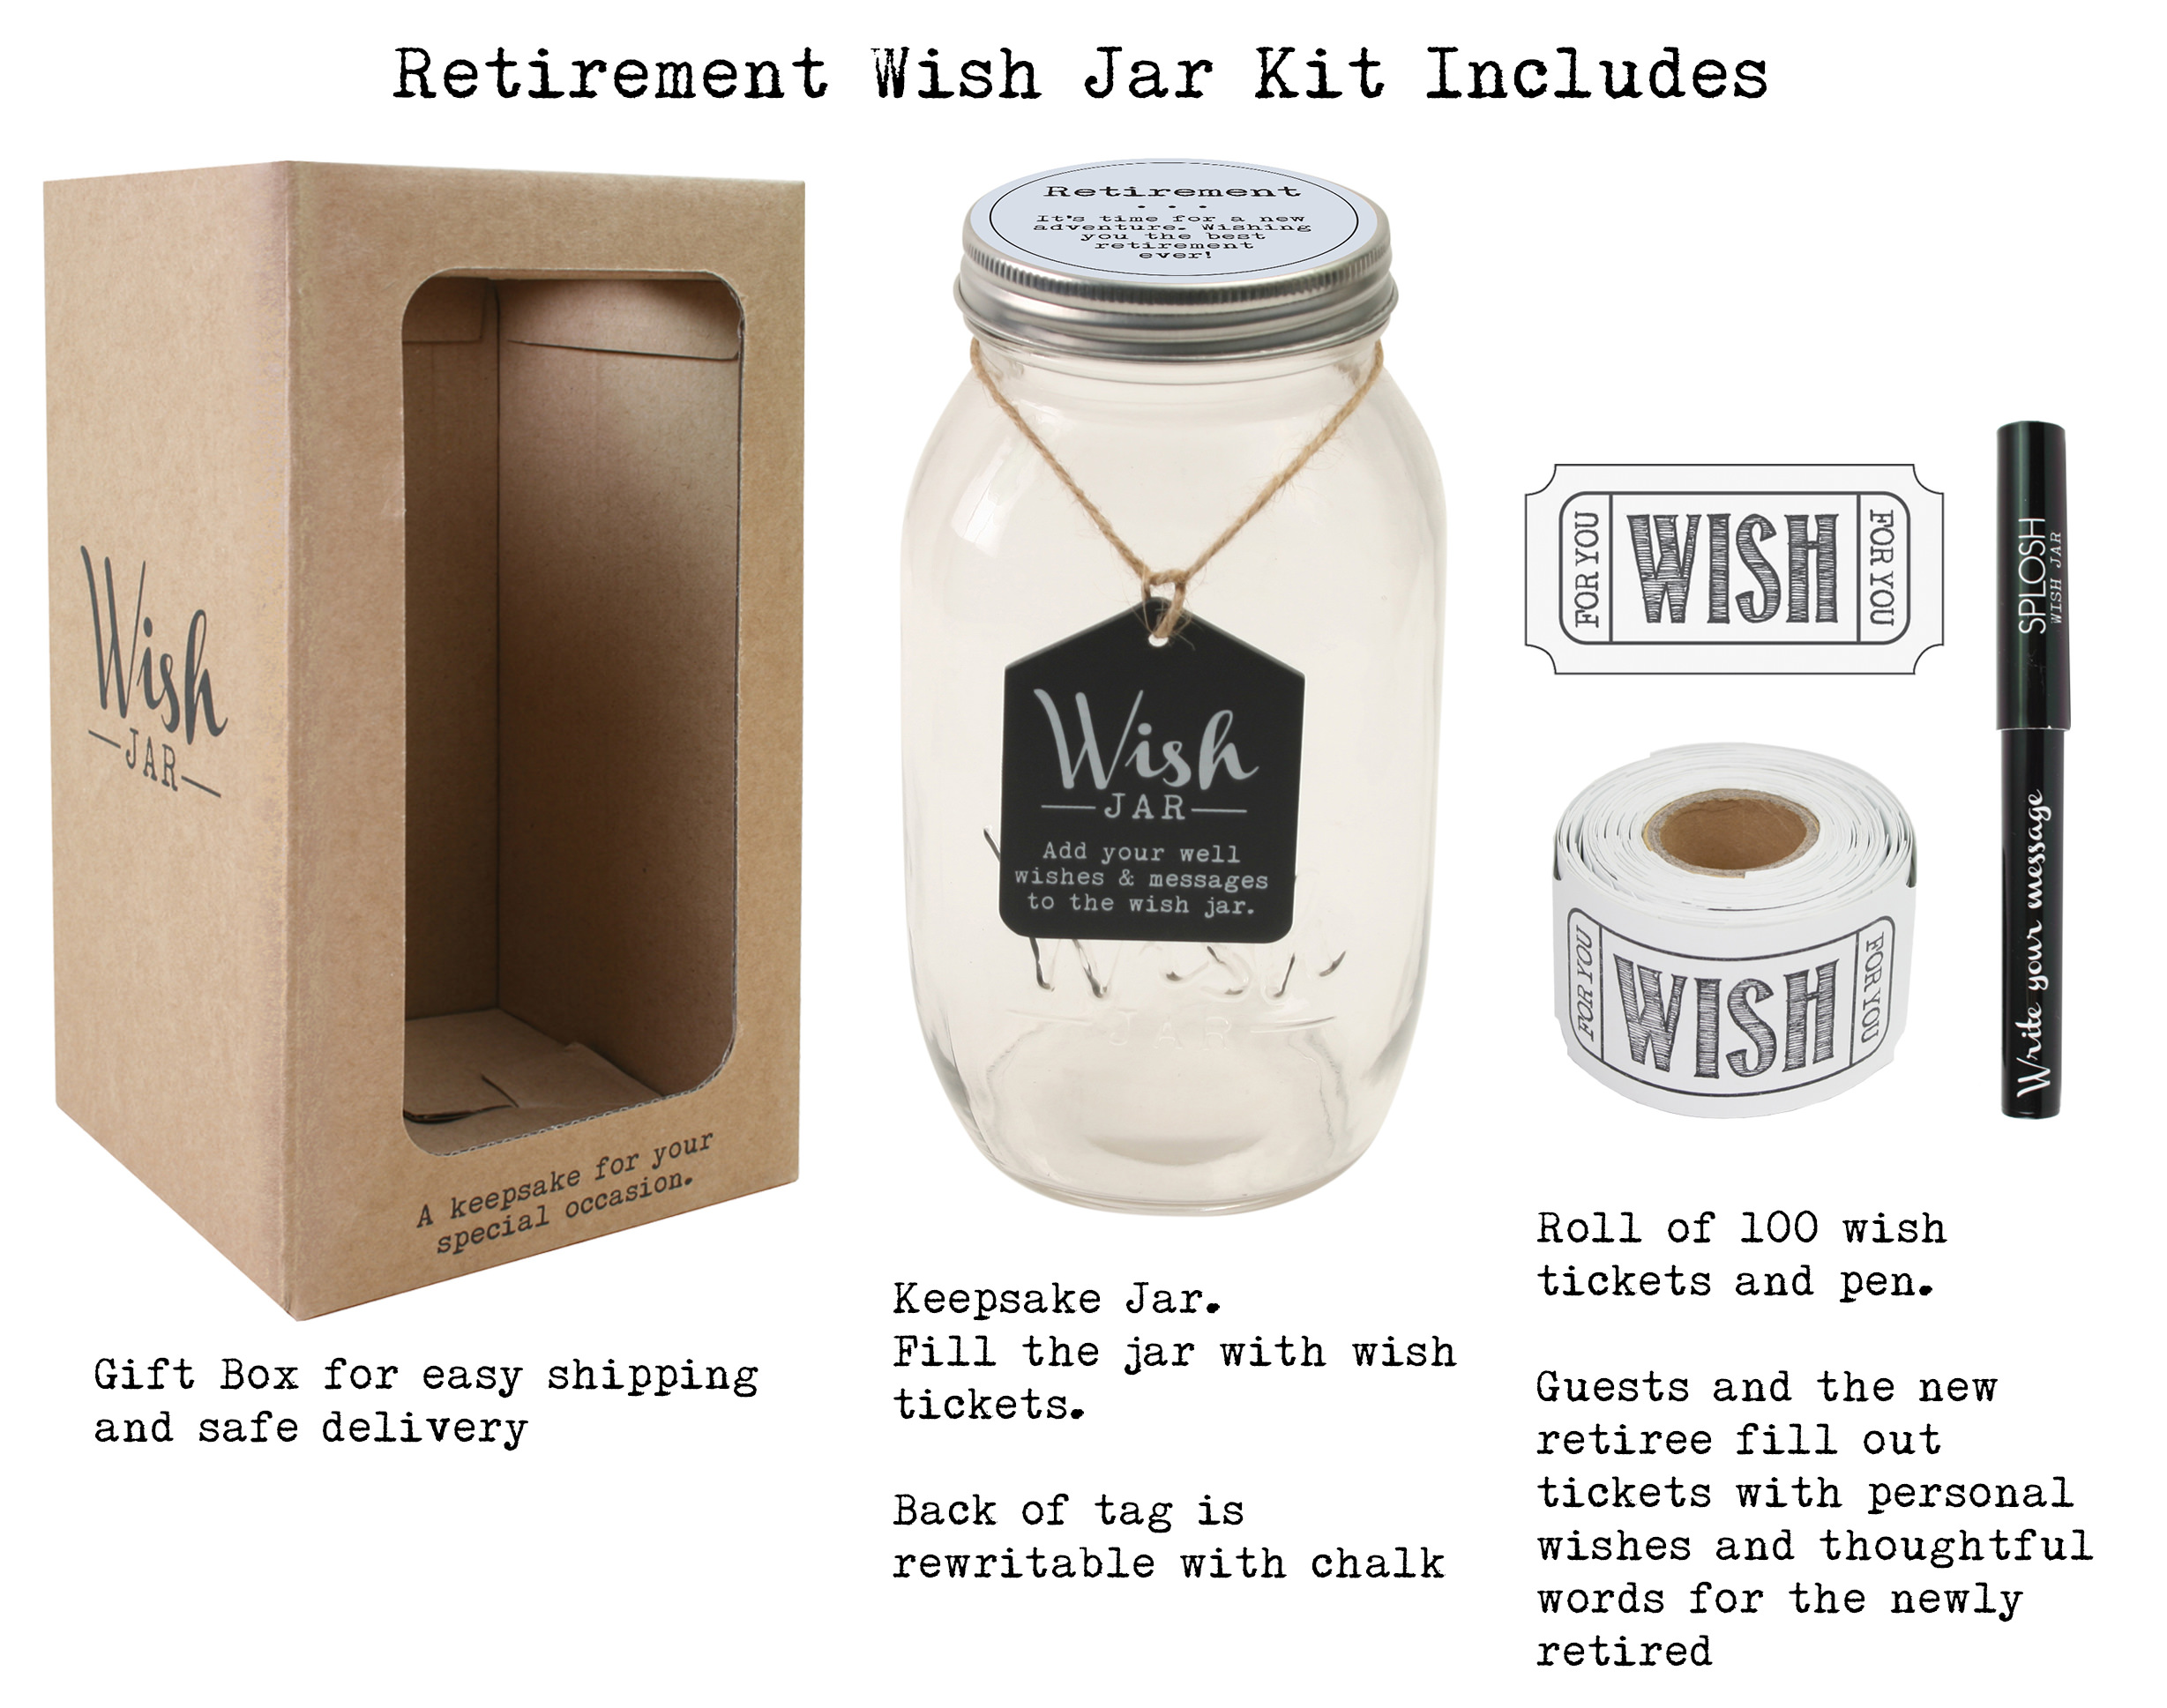 Top Shelf Retirement Wish Jar Personalized Gift For Men And Women Unique And Thoughtful Gift Ideas For Mom Dad Husband Wife Coworker Or Best Friend Kit Comes With 100